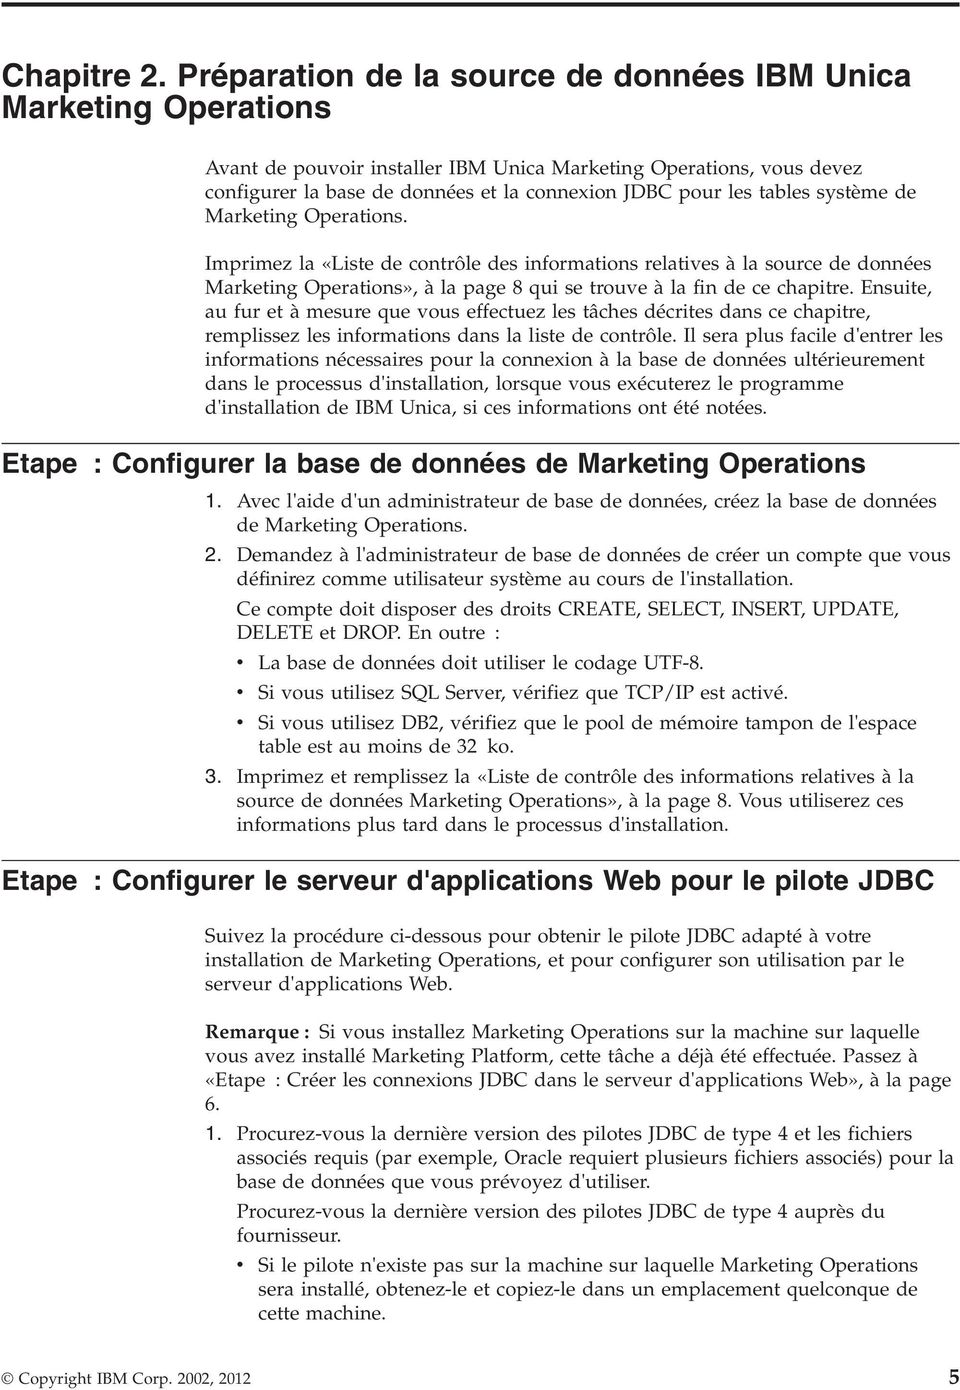 système de Marketing Operations. Imprimez la «Liste de contrôle des informations relaties à la source de données Marketing Operations», à la page 8 qui se troue à la fin de ce chapitre.